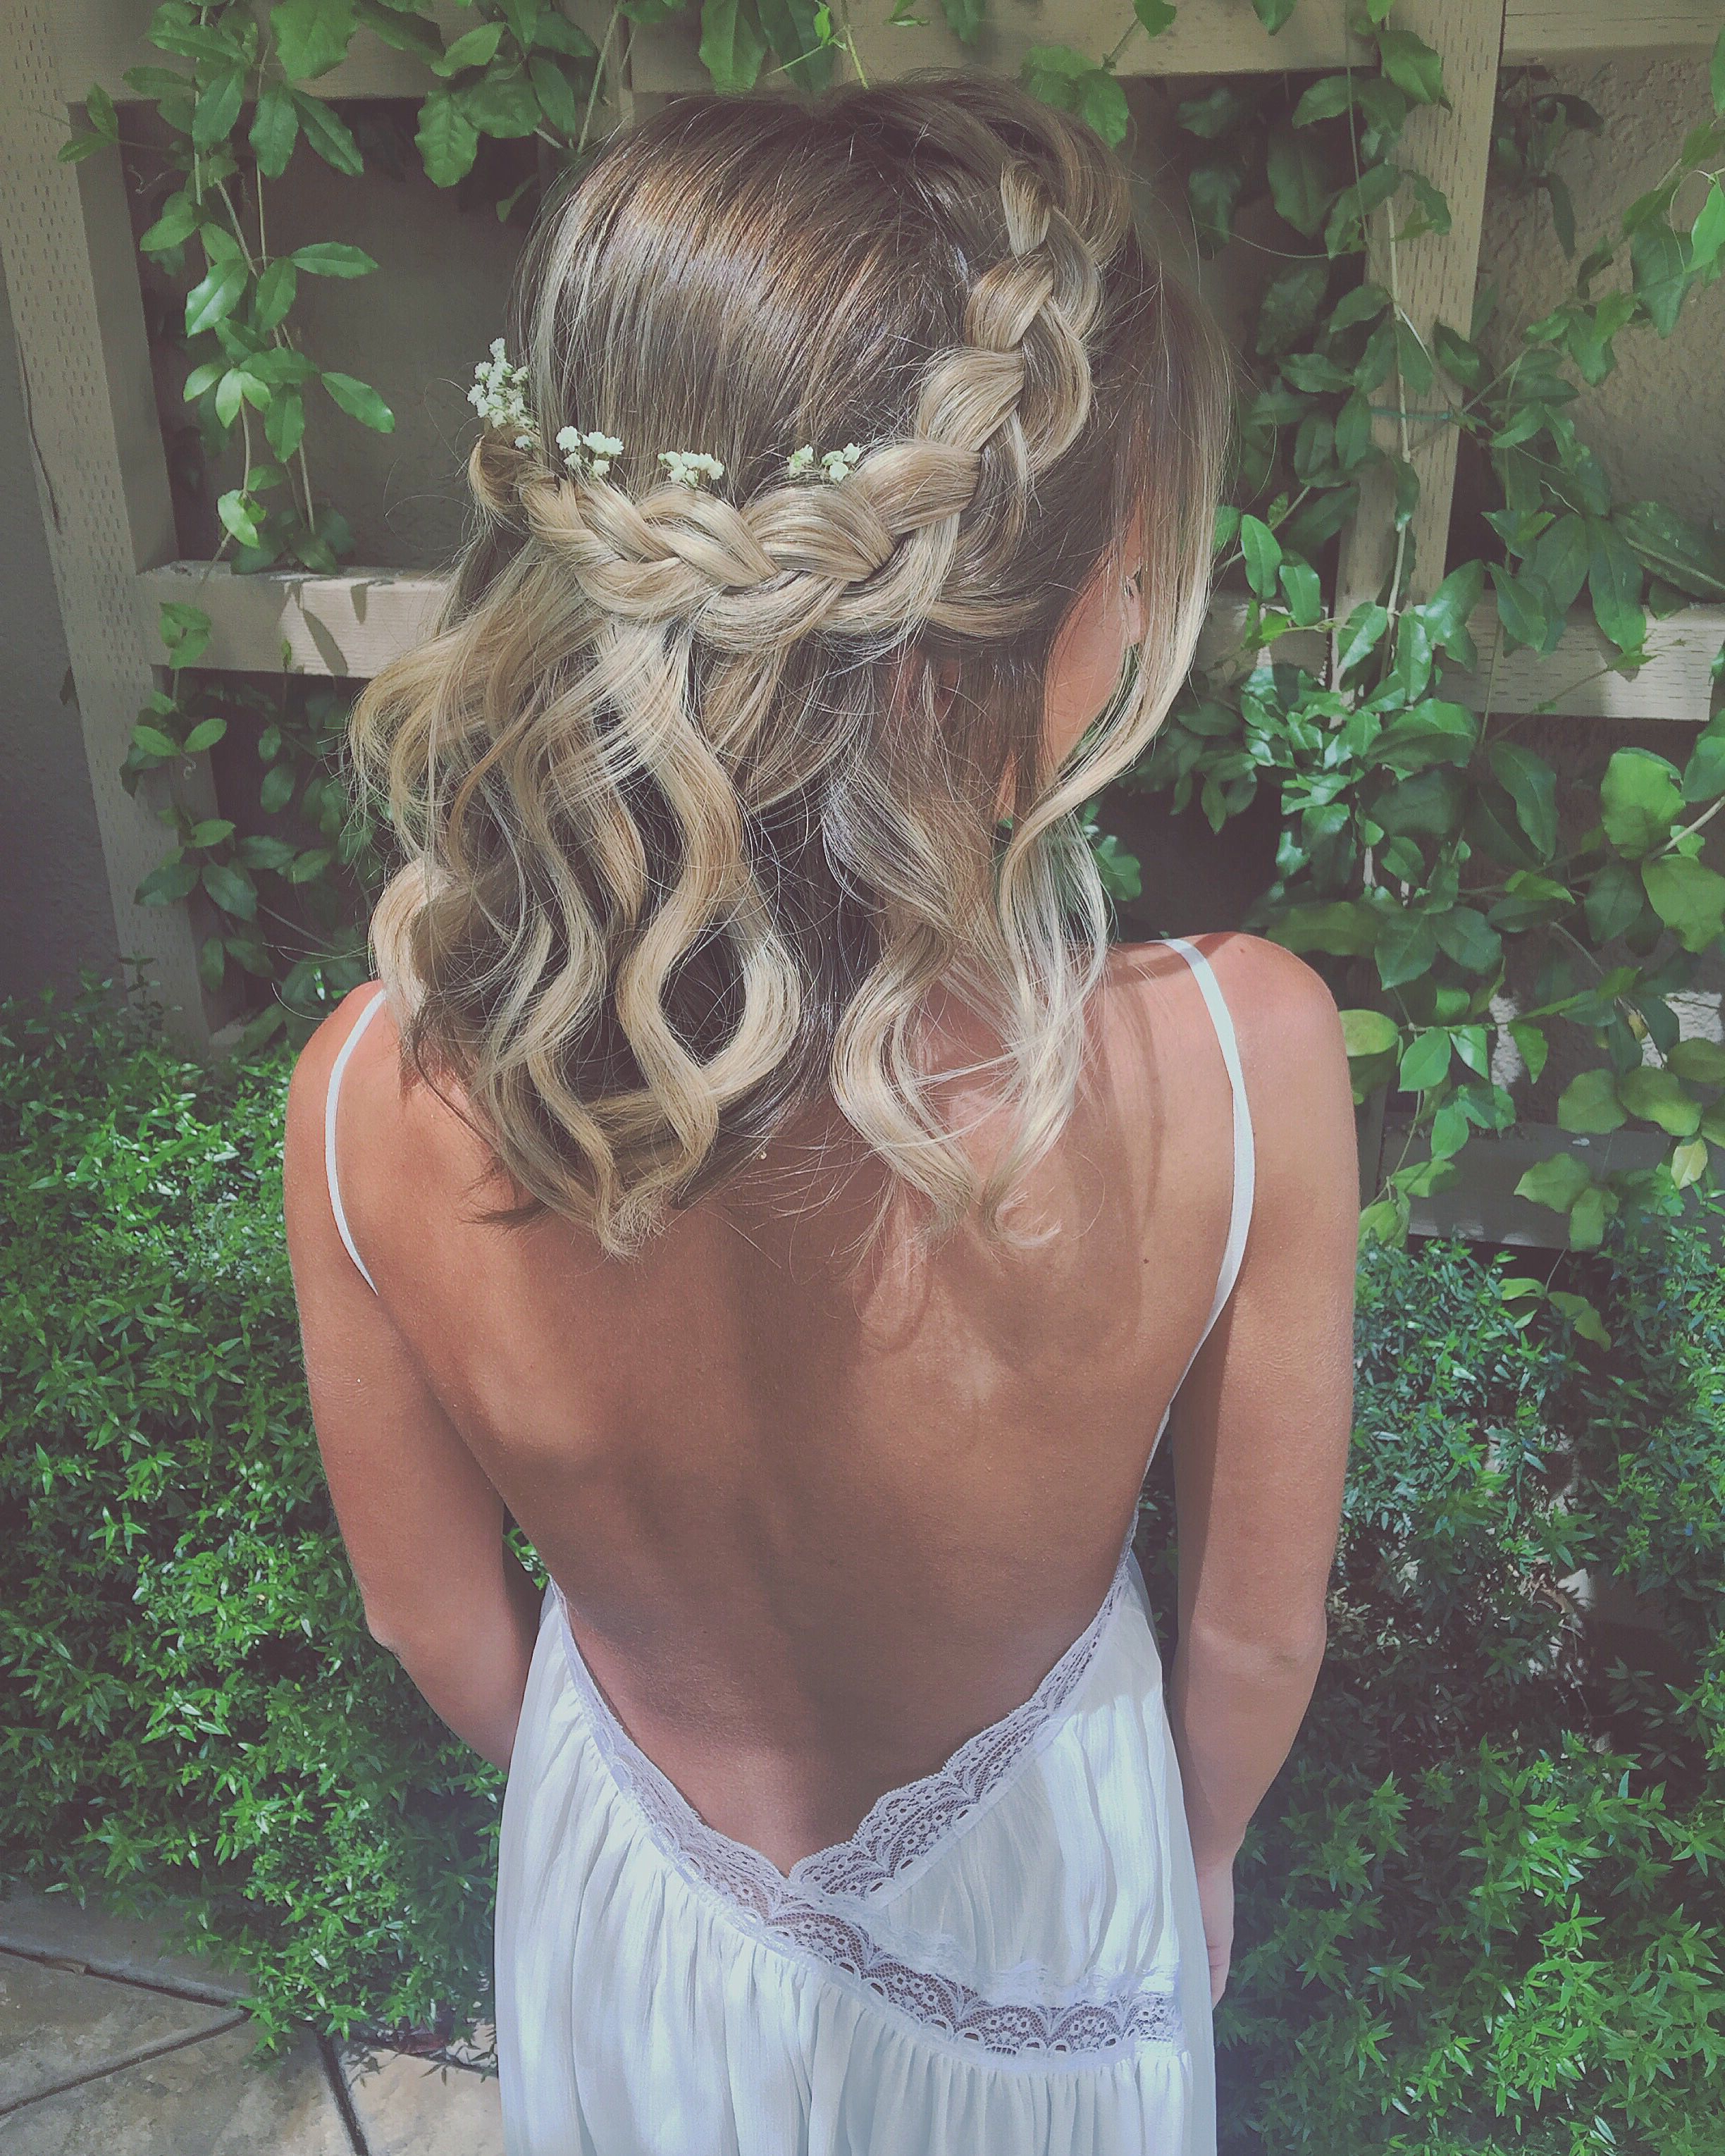 45 Undercut Hairstyles With Hair Tattoos For Women (View 4 of 20)